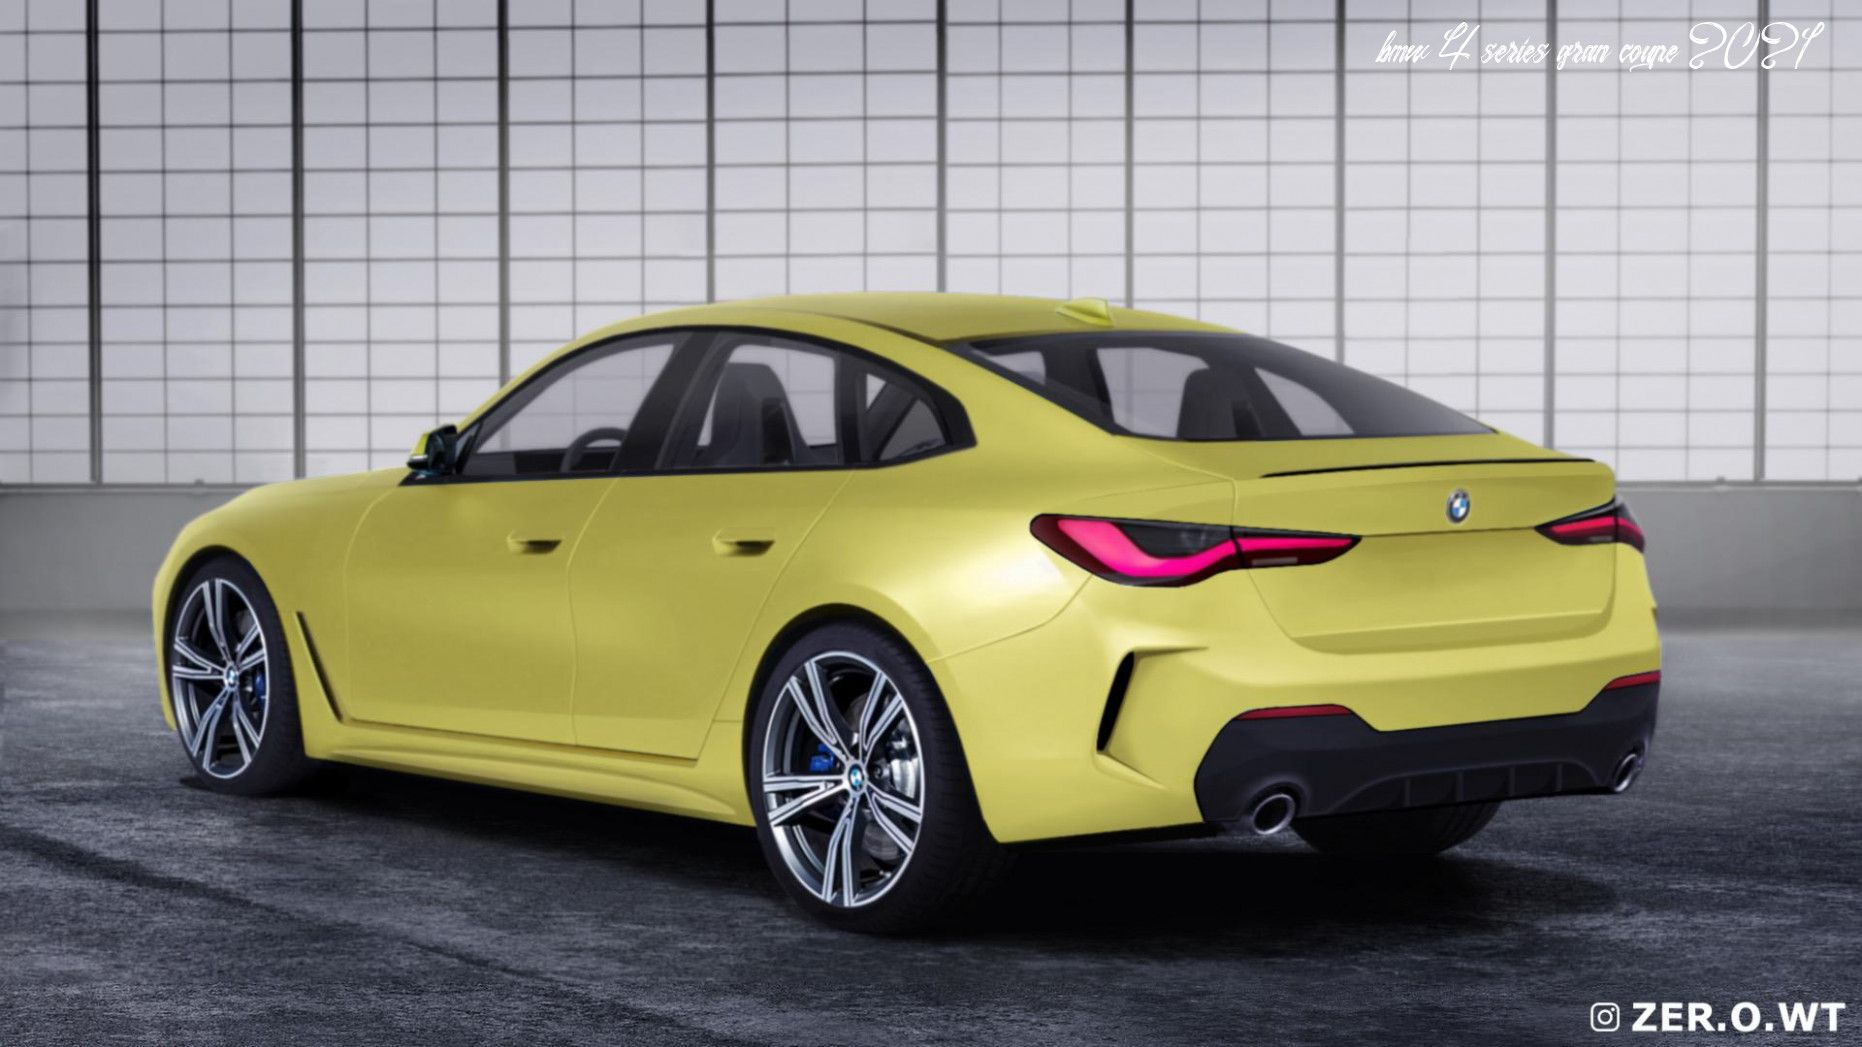 Bmw 4 Series Gran Coupe 2021 Style In 2020 Bmw Bmw 4 Series Bmw 4